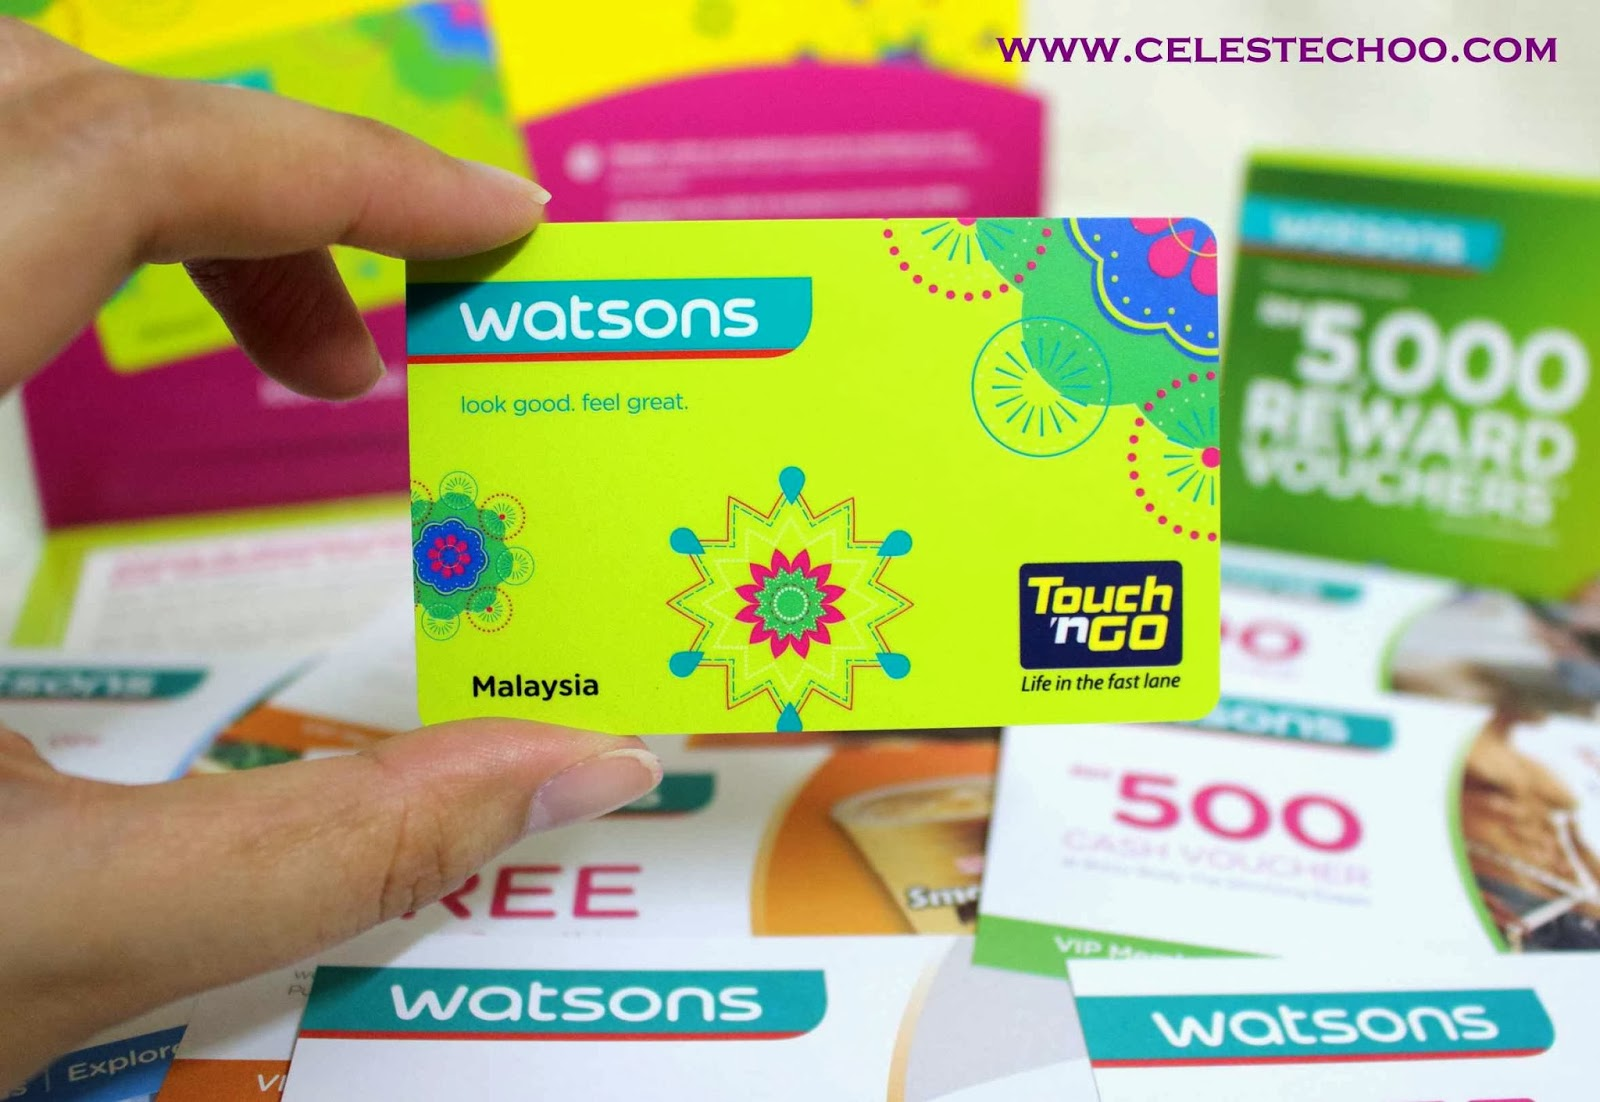 Watsons Vip Card Has Evolved To A Touch N Go Card Celeste Choo